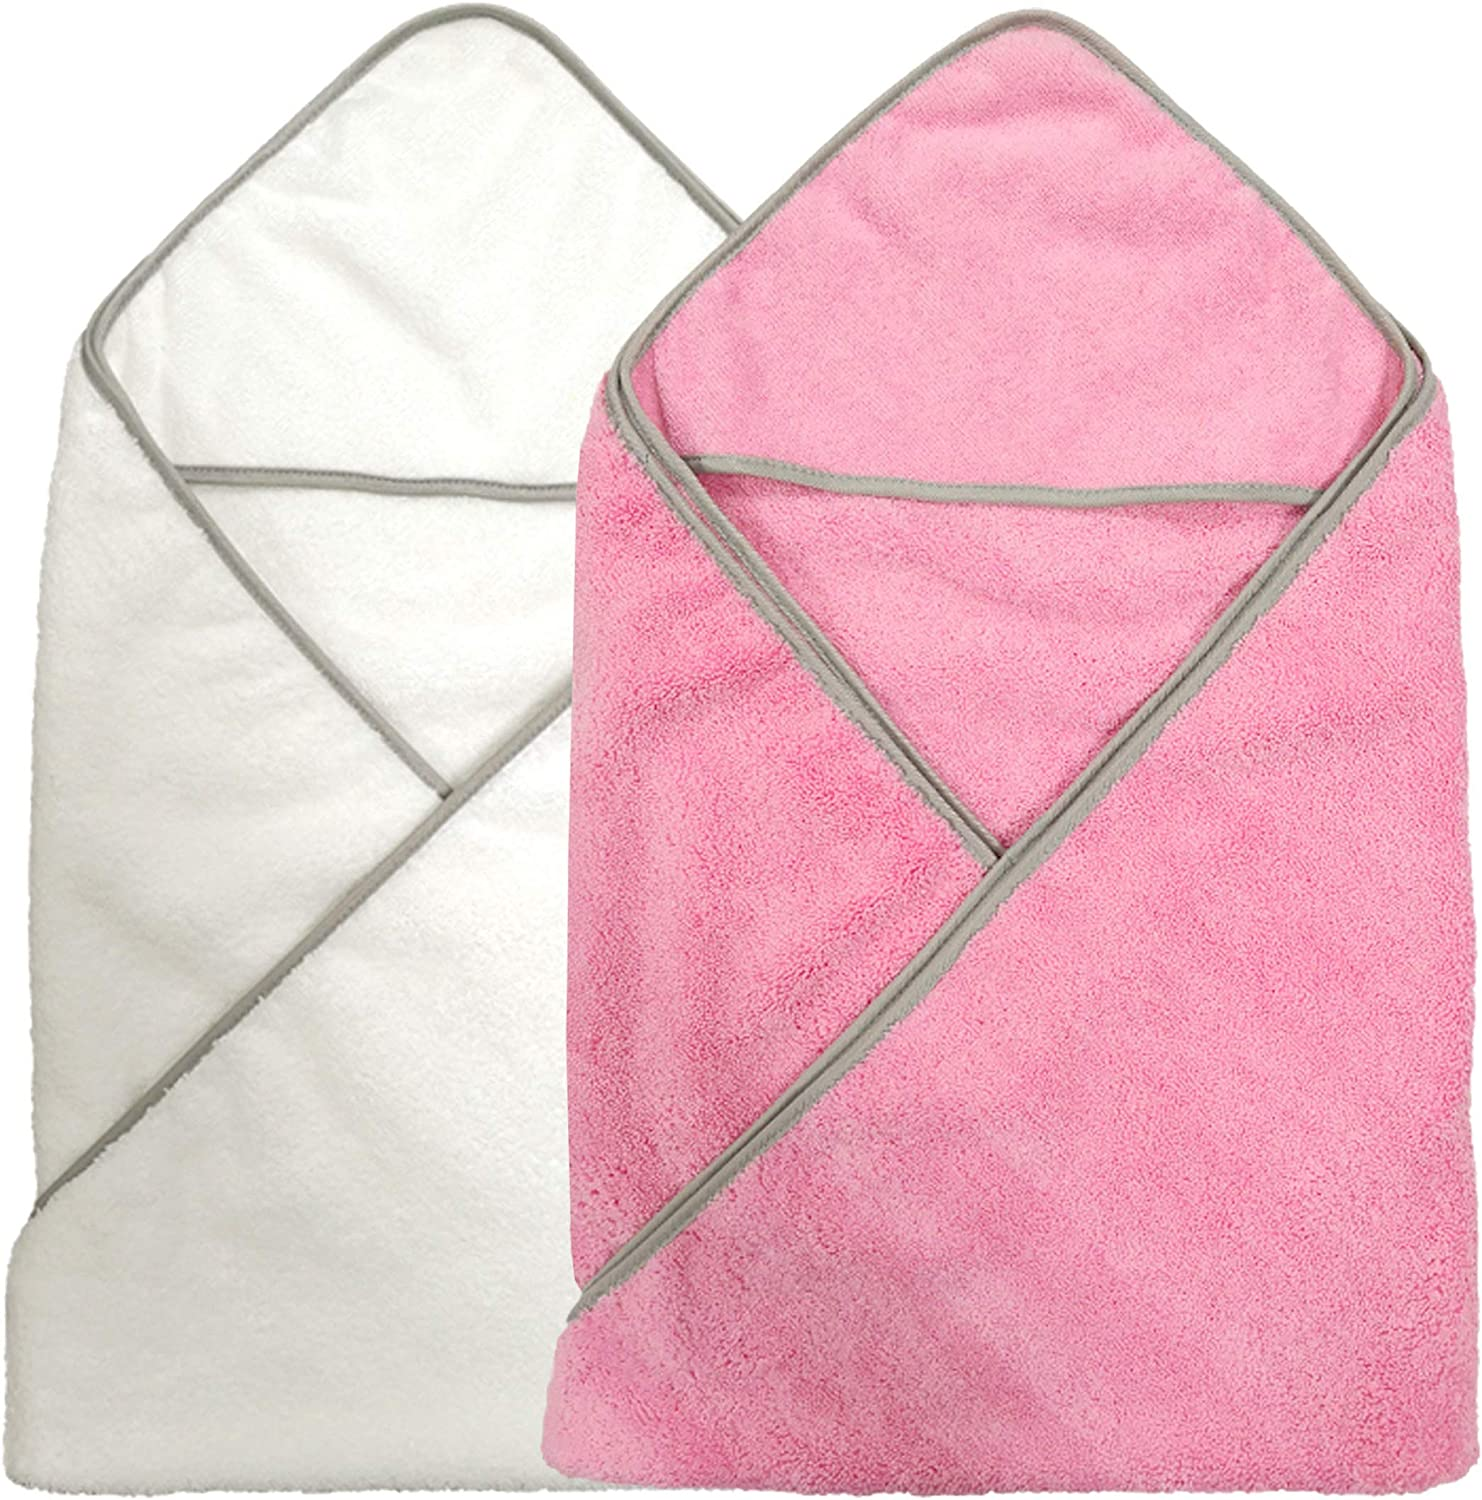 36 x 36 in Polyte Premium Hypoallergenic Microfiber Hooded Baby Bath Towel 2 Pack Pink//White, 36x36 in.